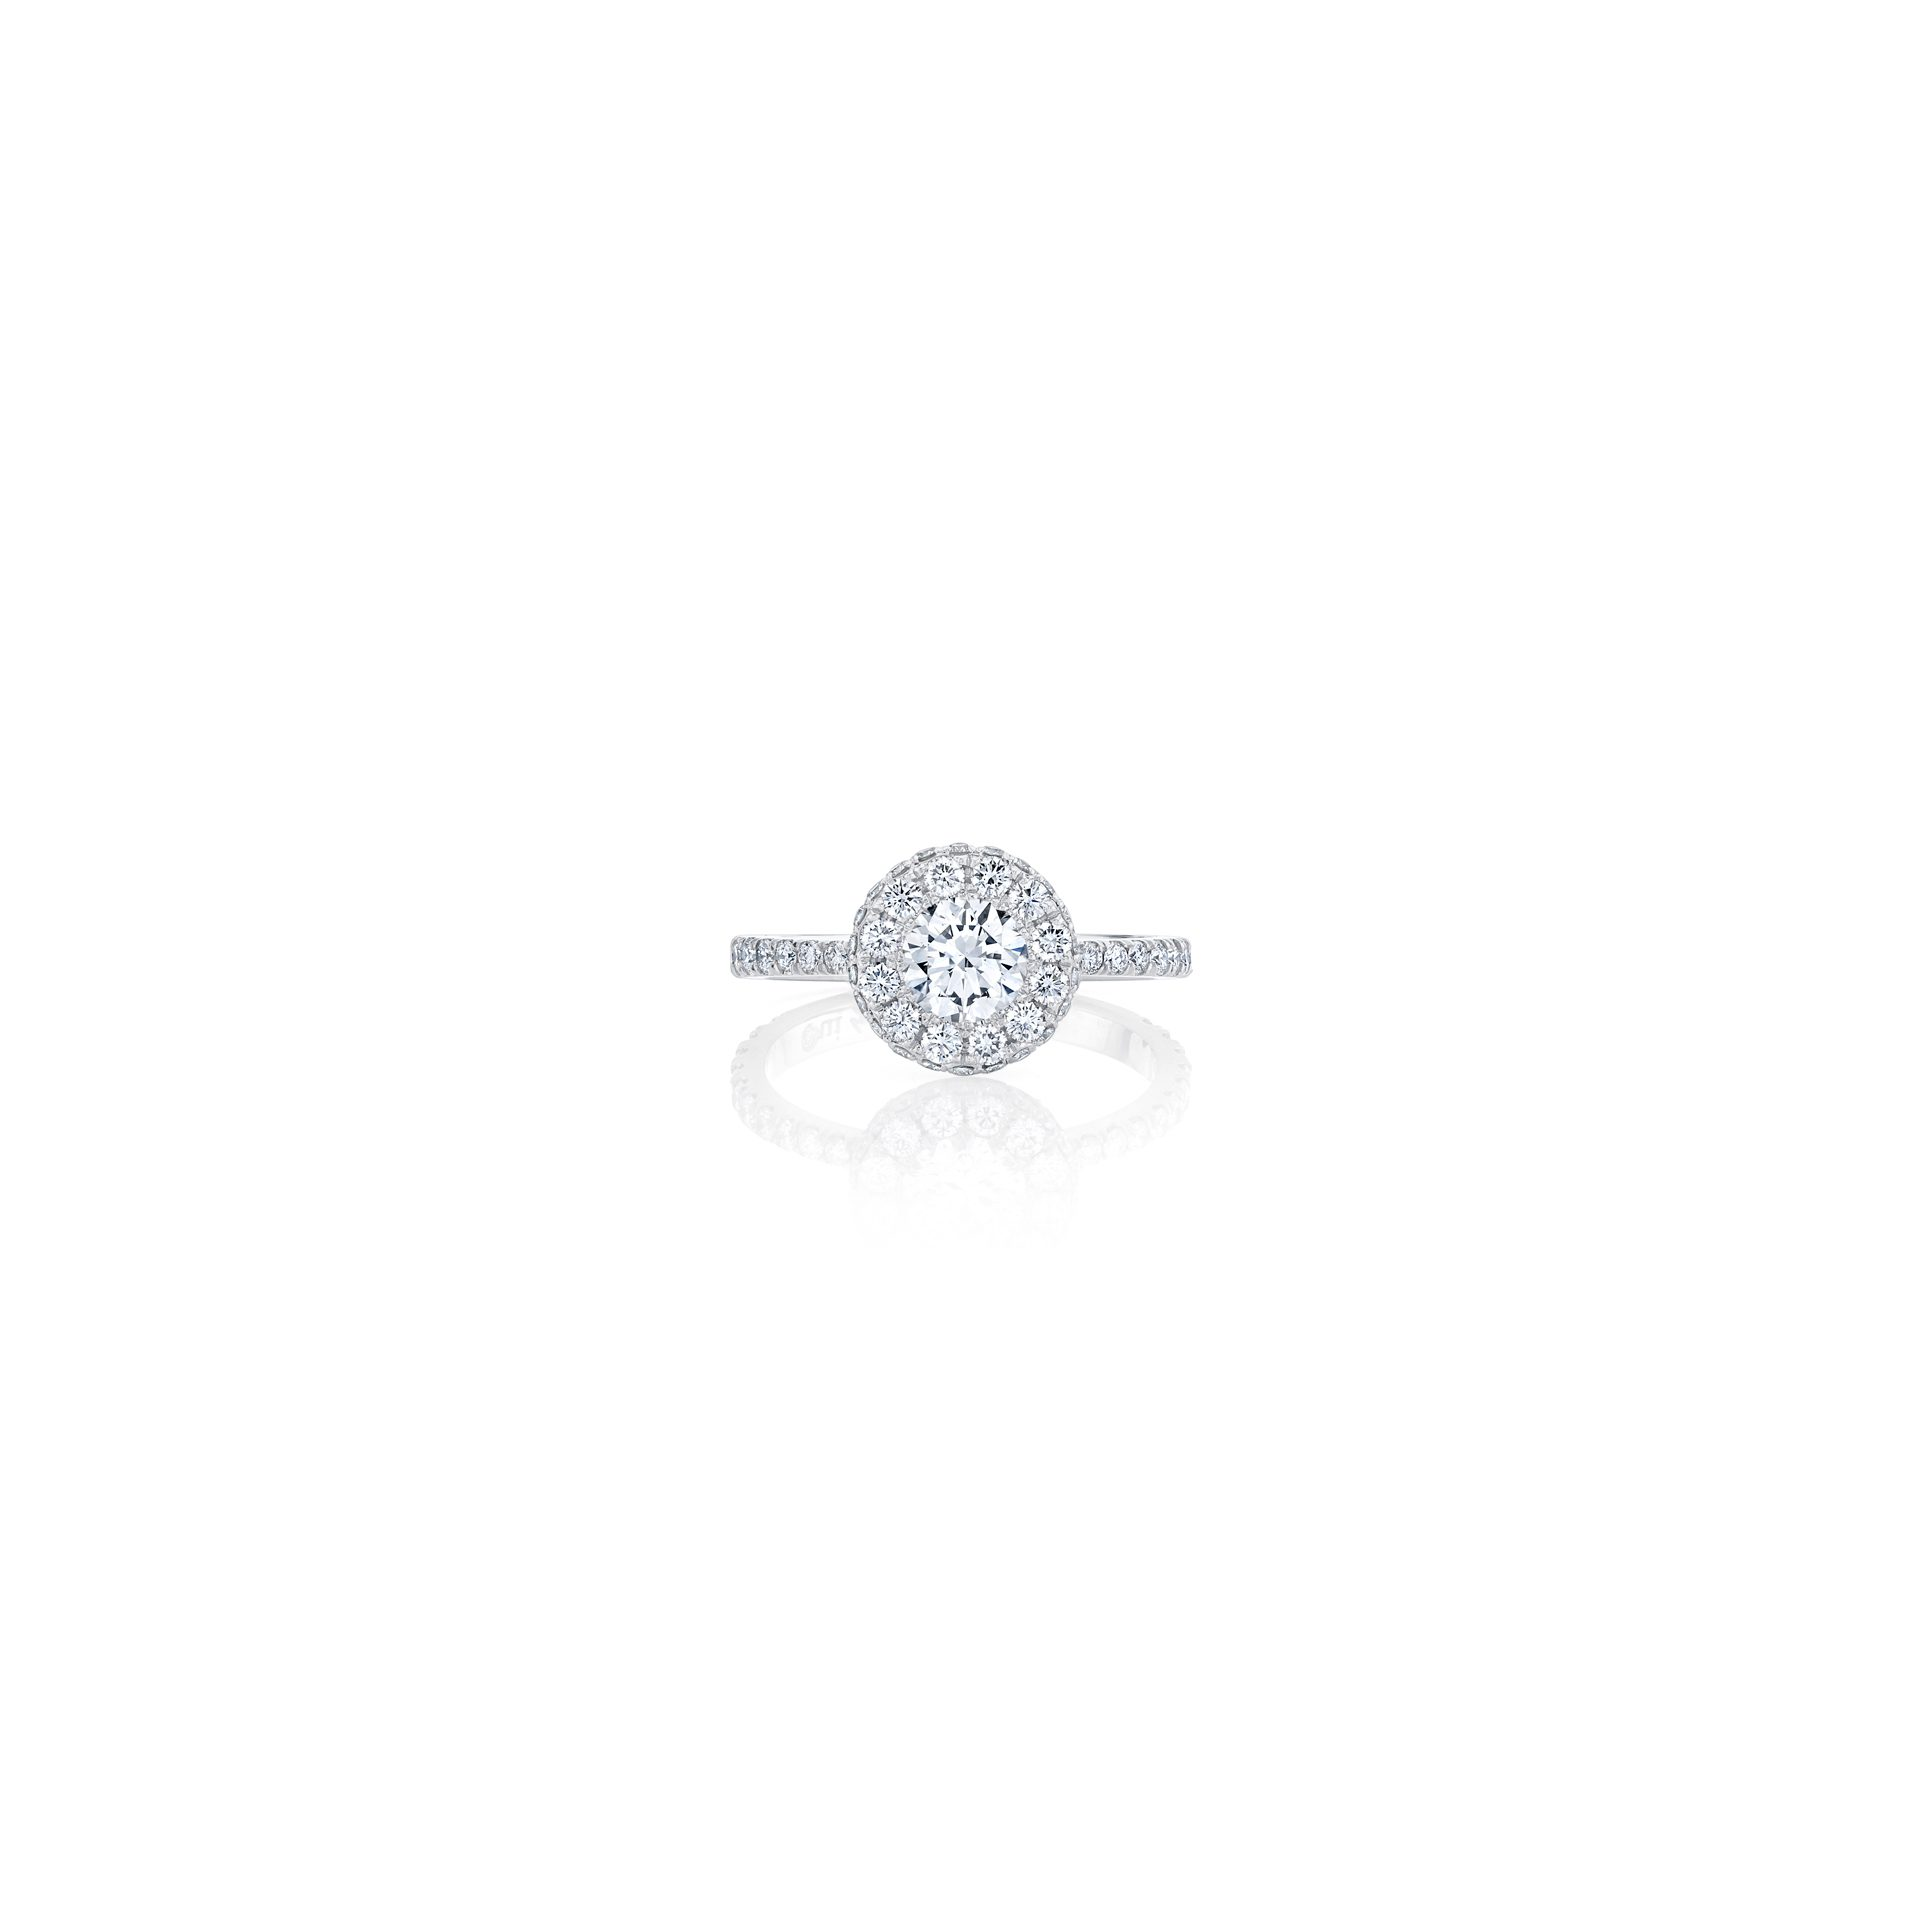 Eloise Round Brilliant Seamless Halo® Engagement Ring with diamond pavé in 18k White Gold Front View by Oui by Jean Dousset